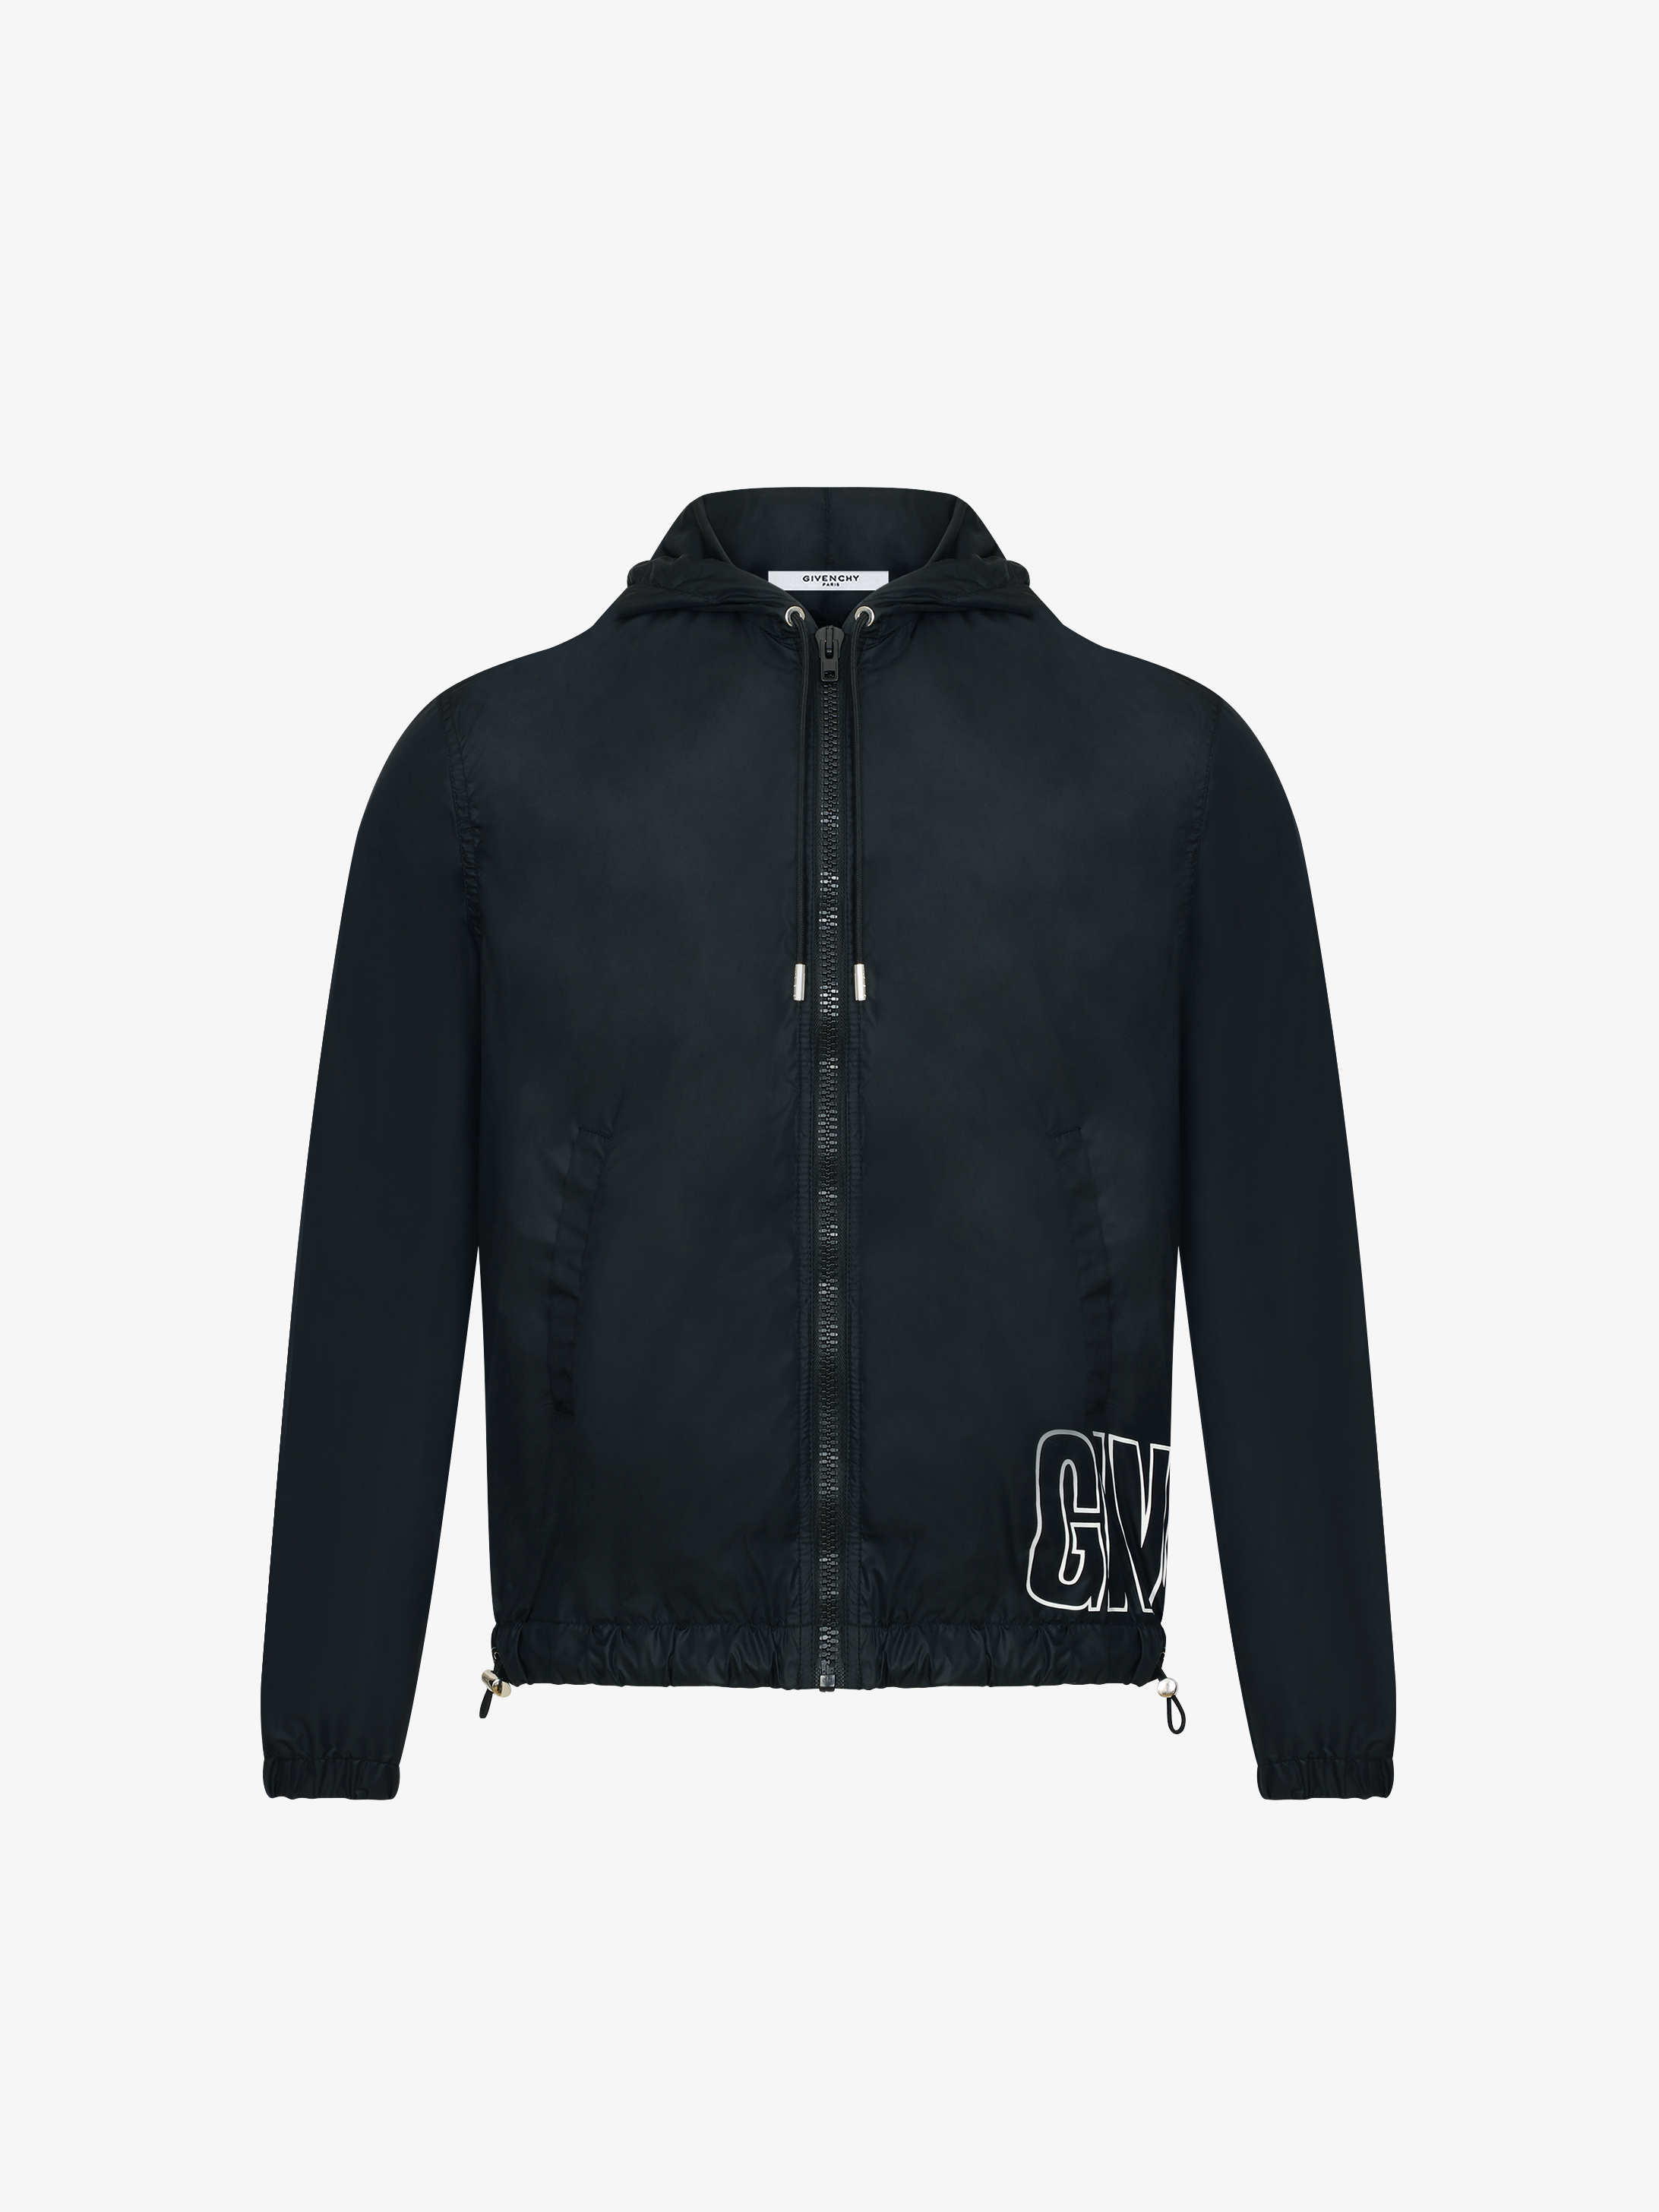 GIVENCHY PARIS windbreaker